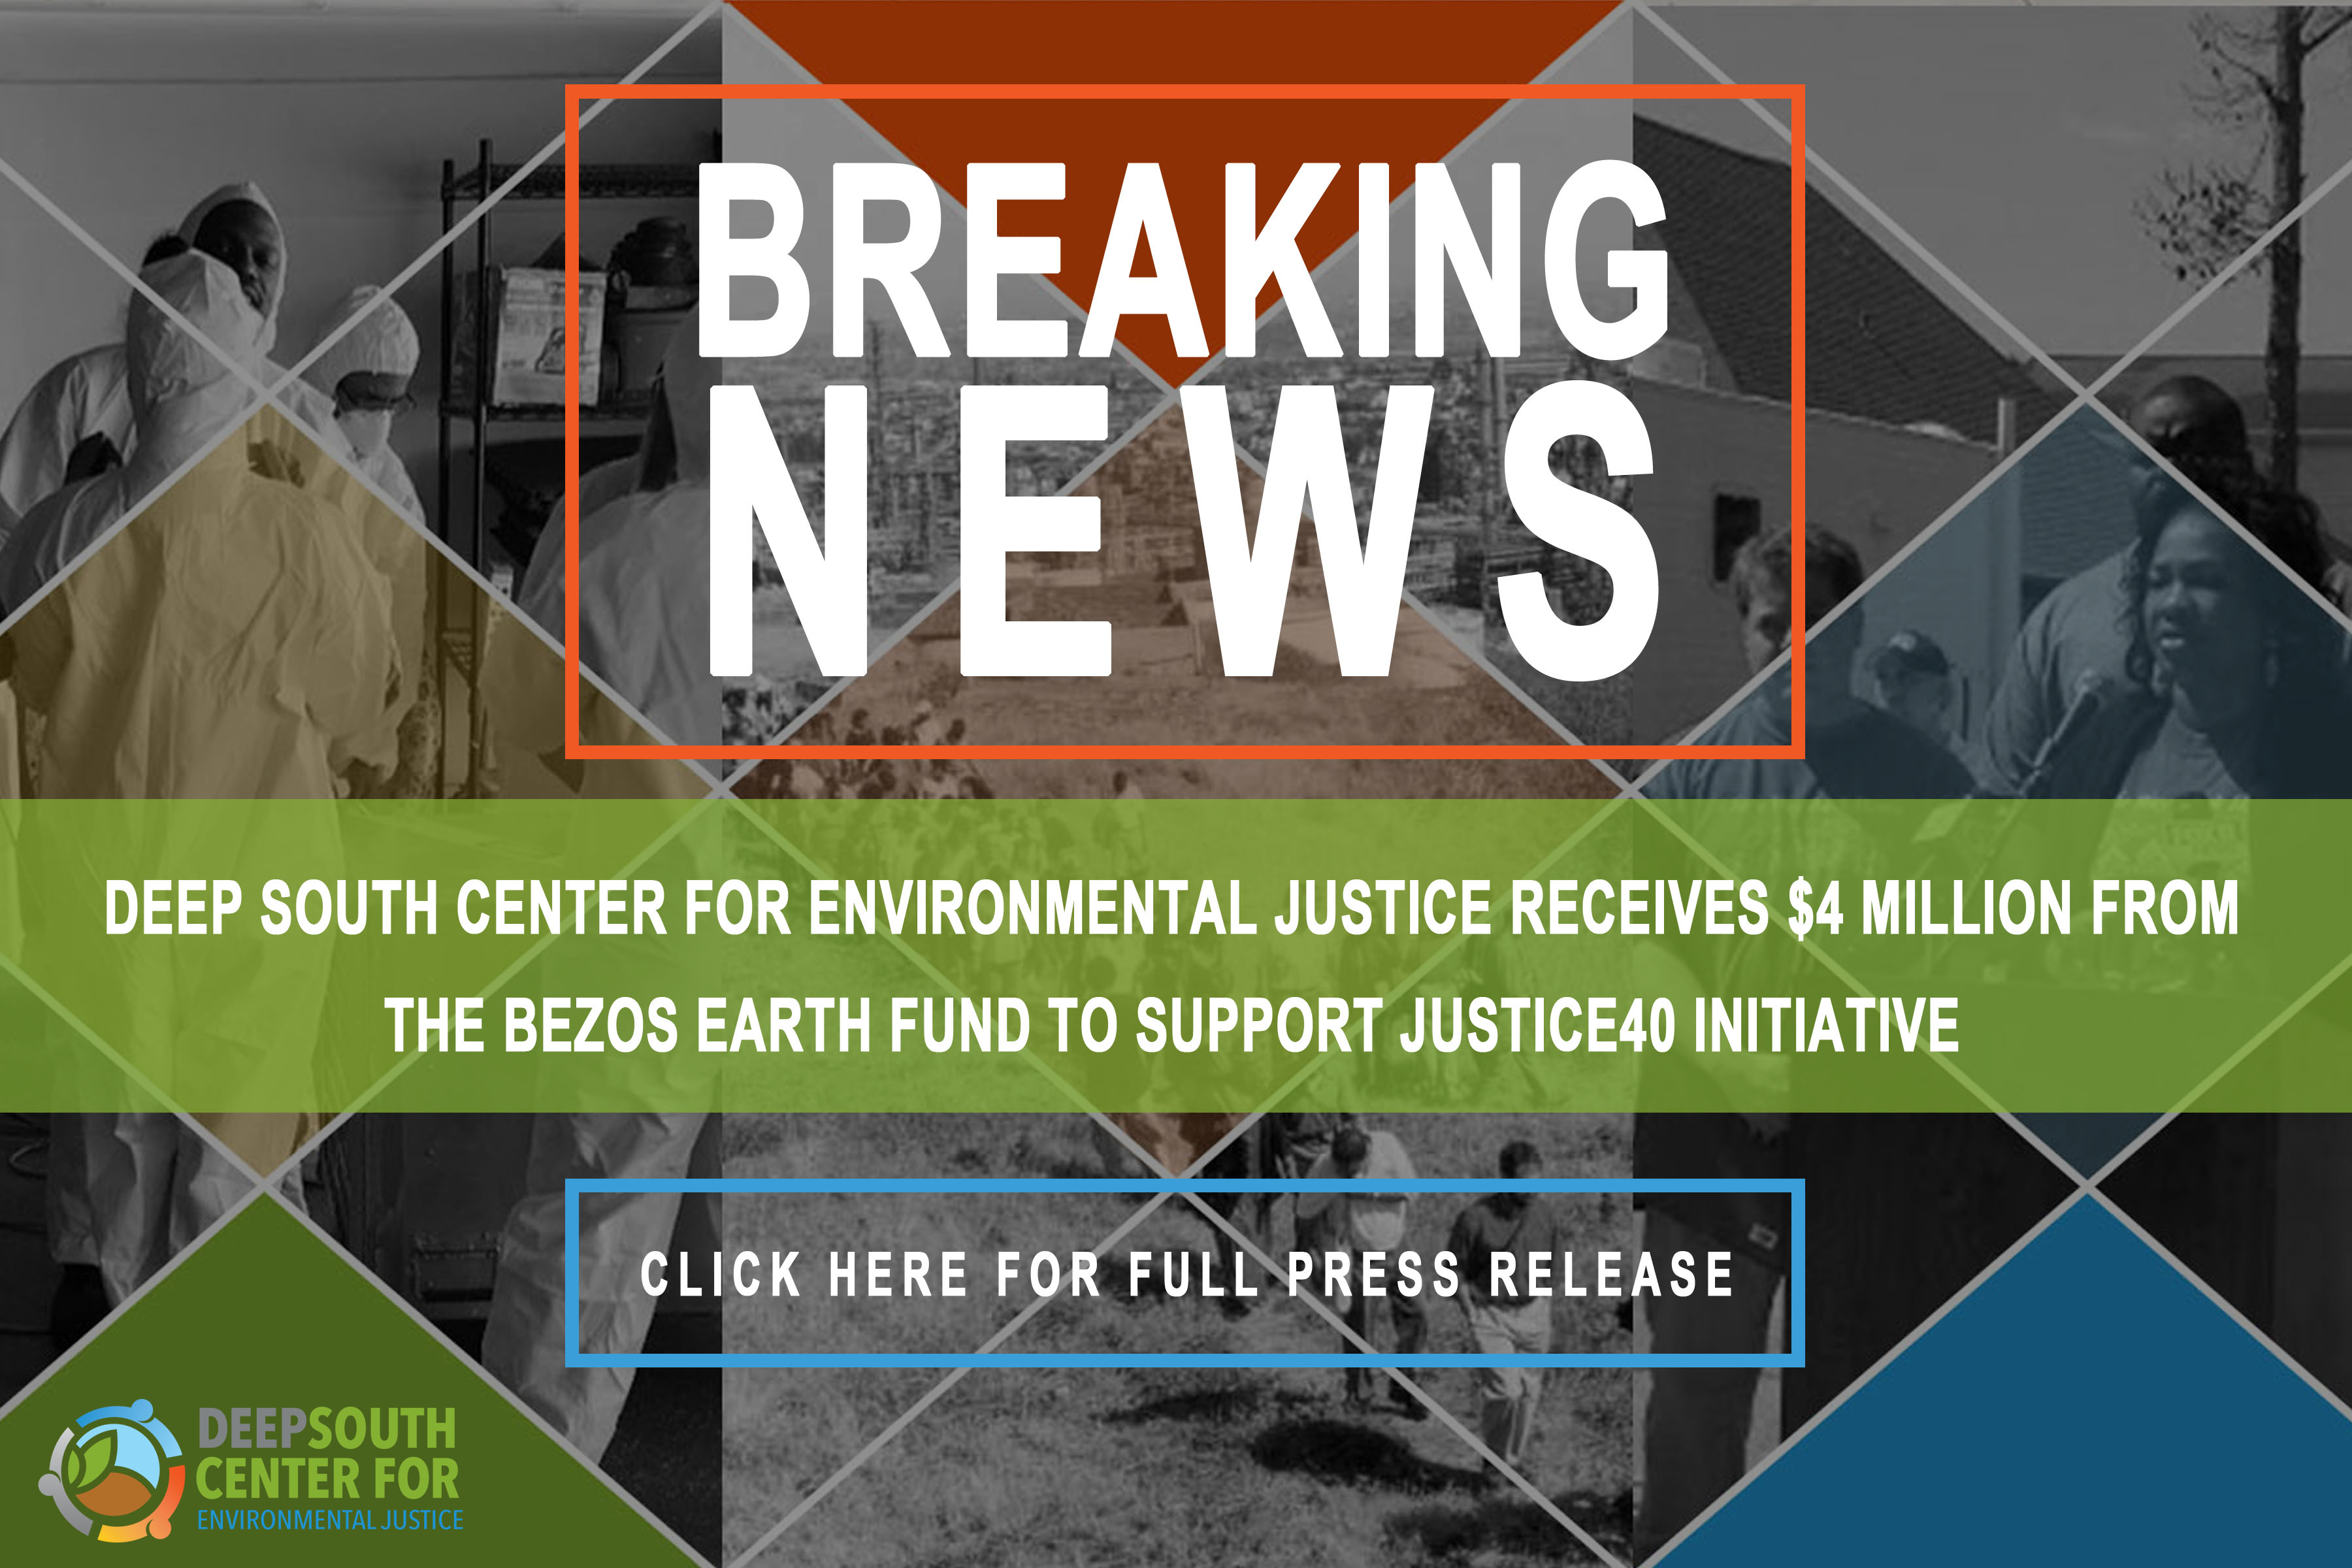 Breaking News - Deep South Center for Environmental Justice Receives $4 Million From Bezos Earth Fund to Support Justice40 Initiative